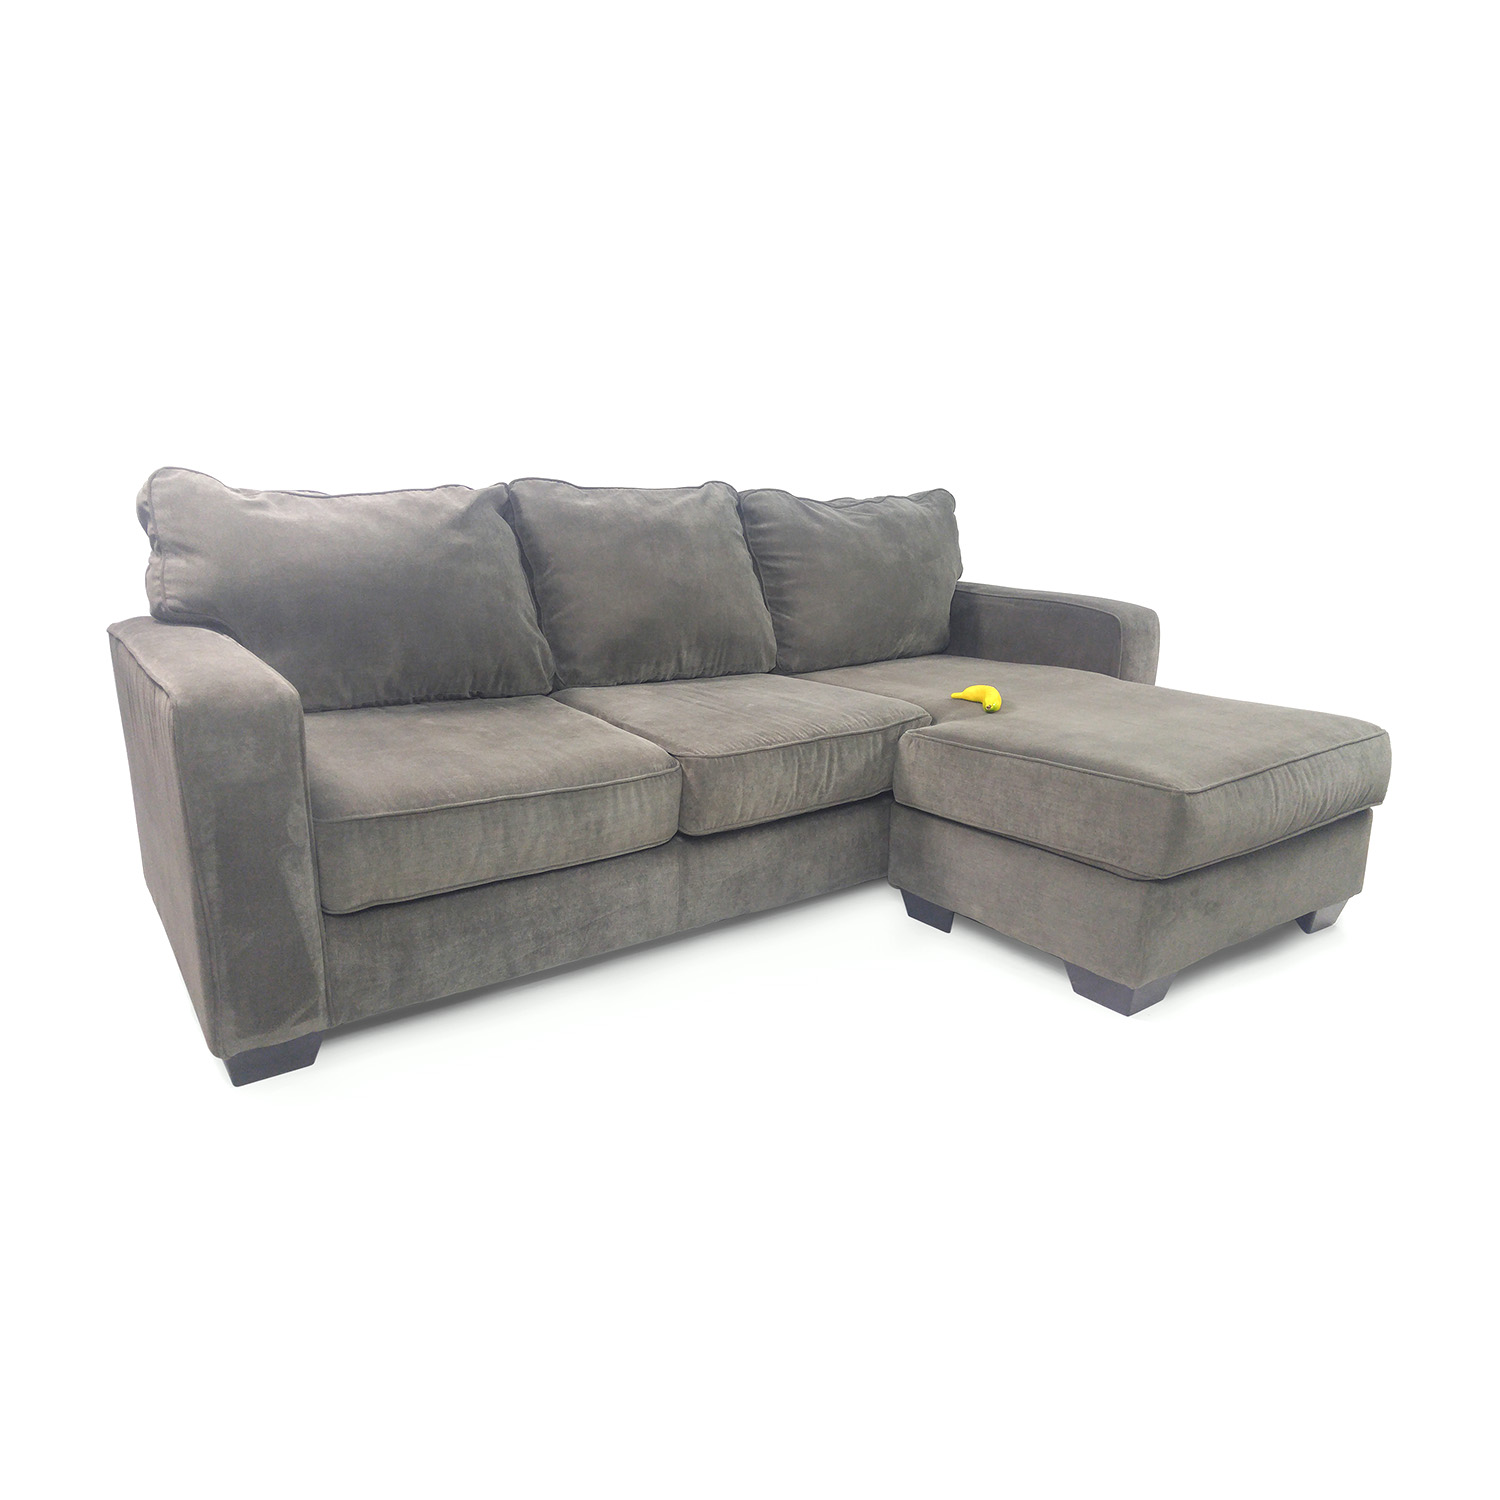 50 off ashley furniture hodan sofa chaise sofas for Ashley chaise lounge recliner